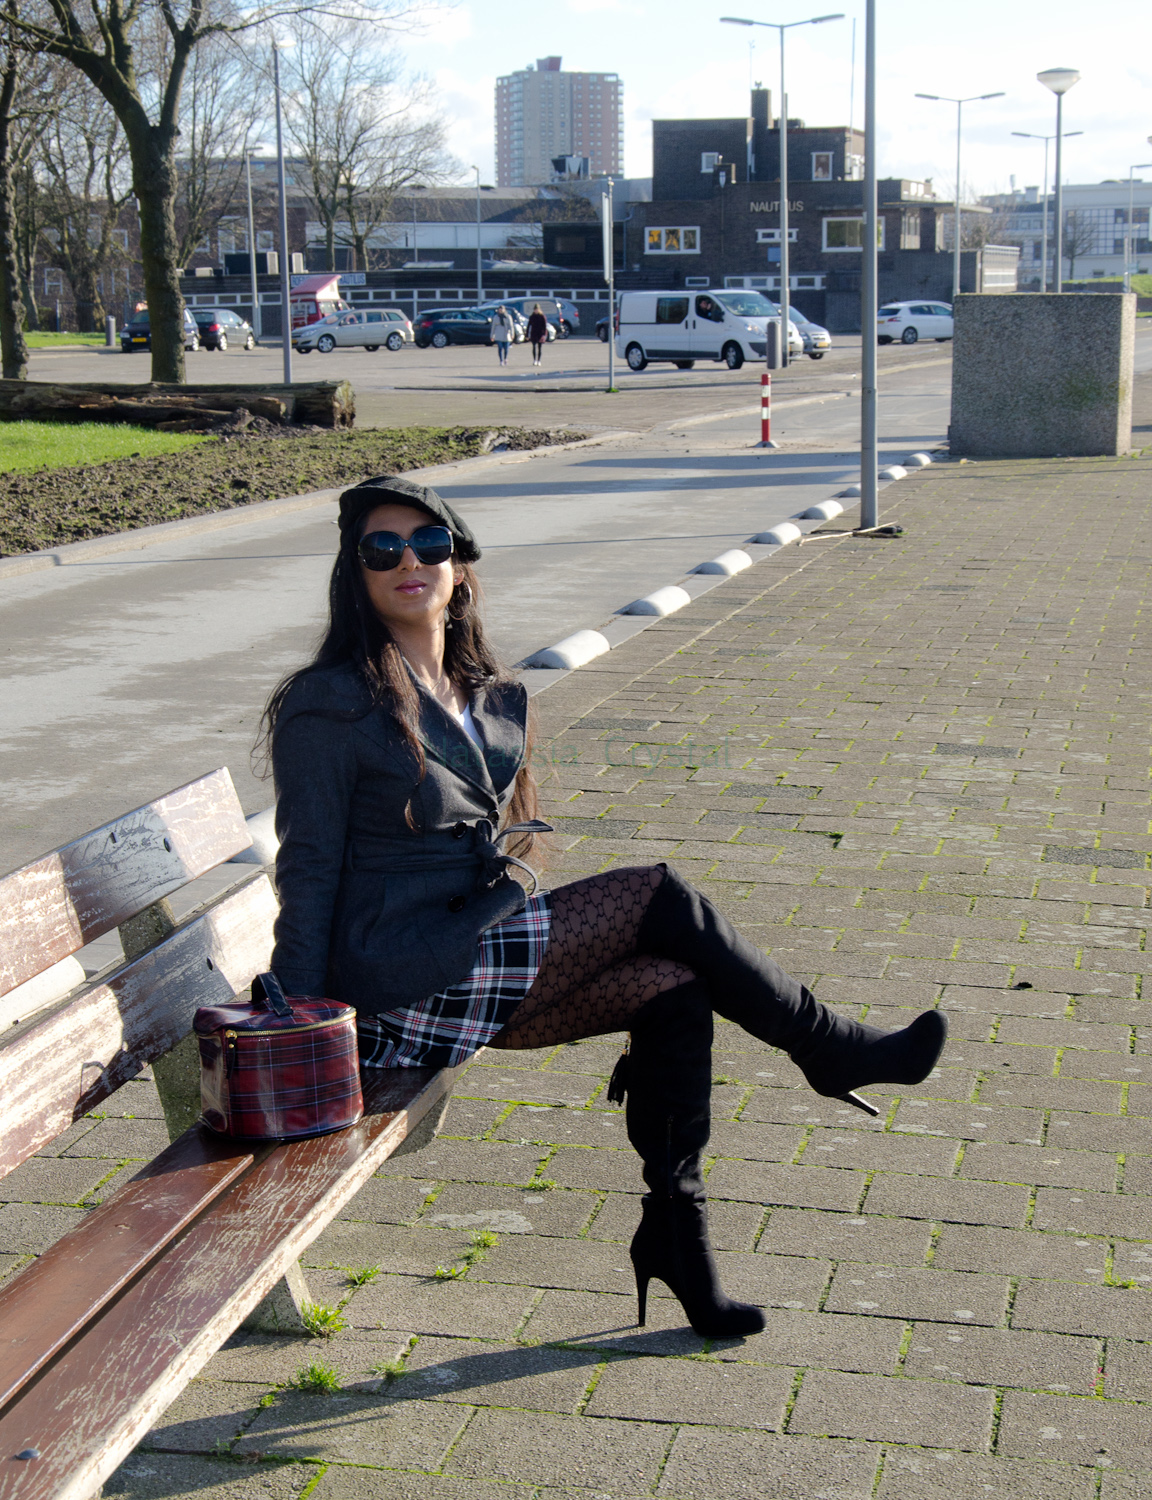 Natassia 39 S Place For Fashion High Heels And Geekiness Chilling In Rotterdam Literally Too